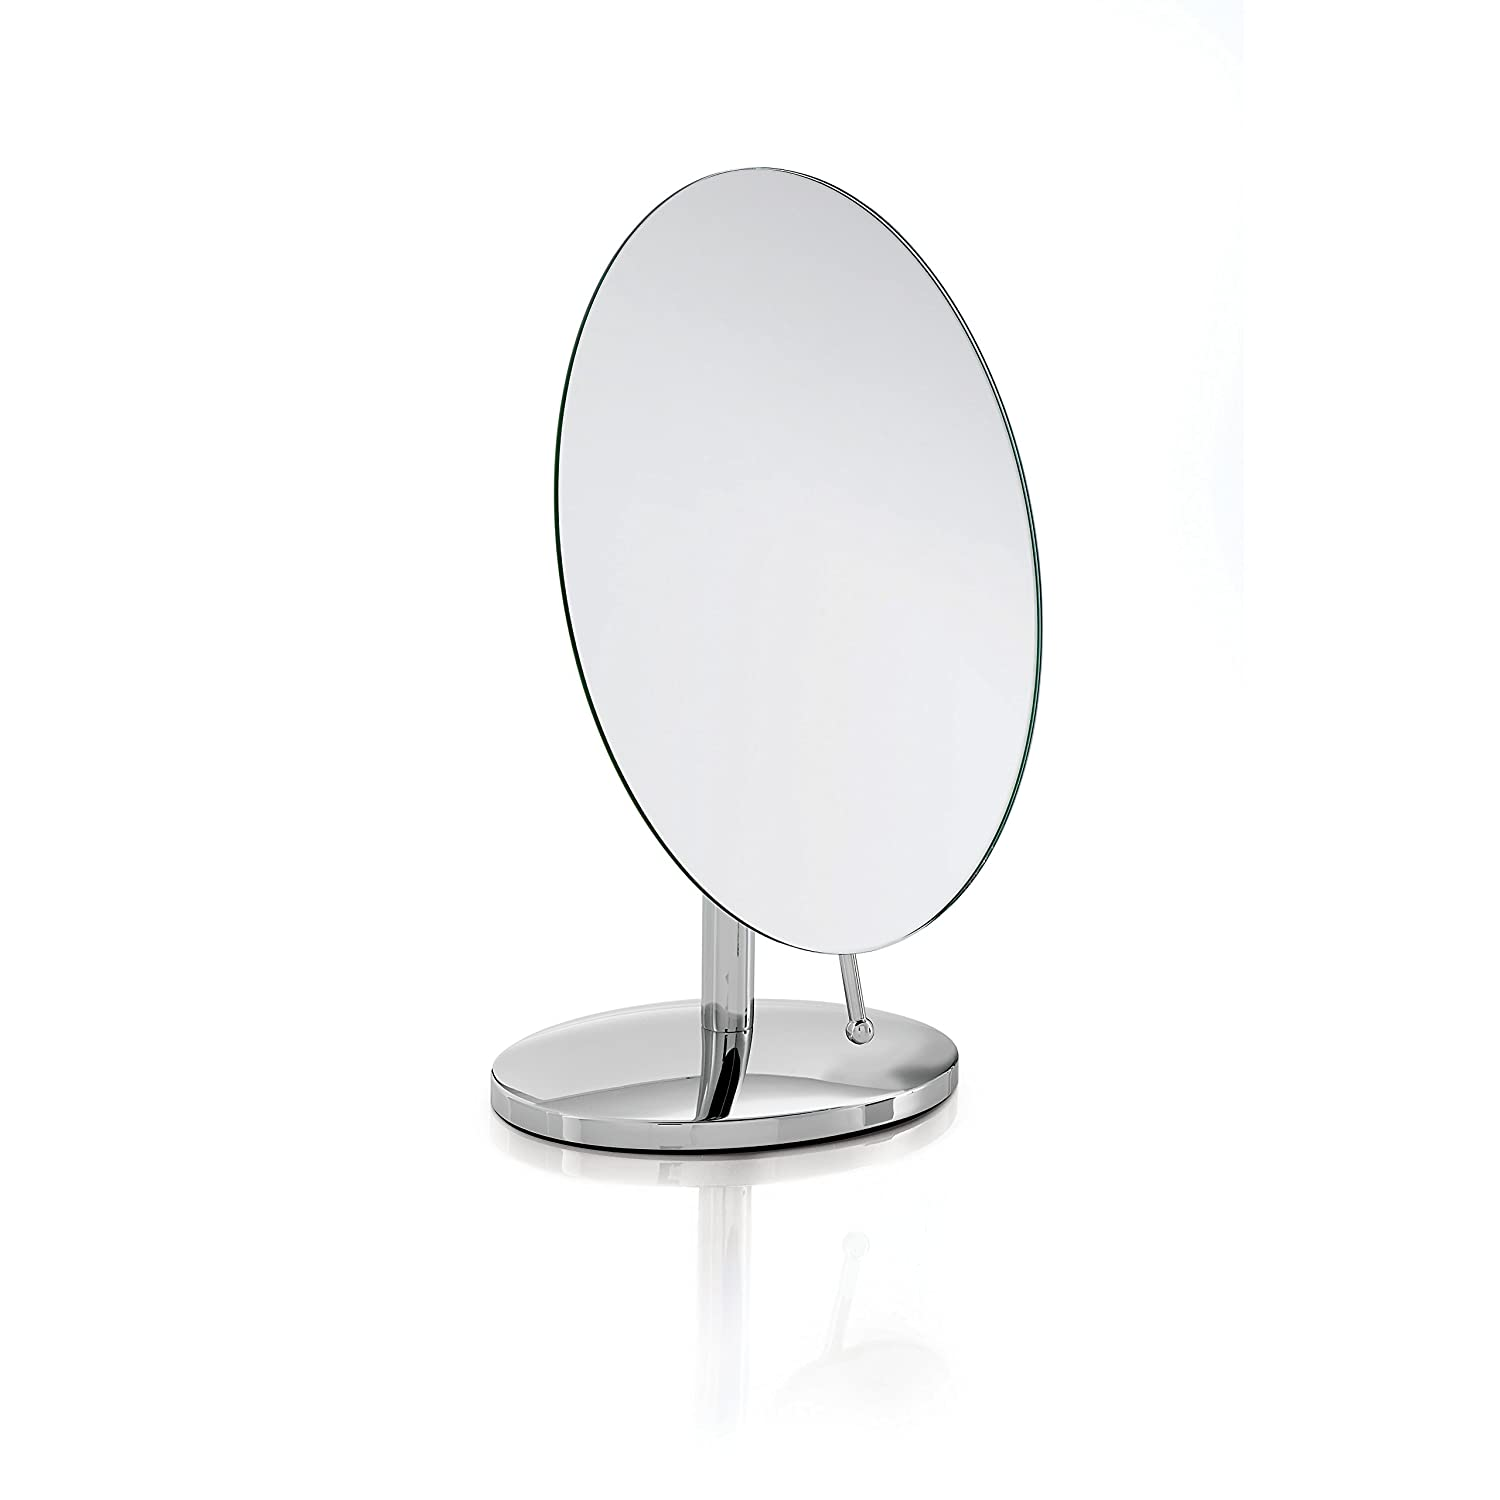 Robert Welch Oblique Stainless Steel Bathroom Pedestal Mirror ...